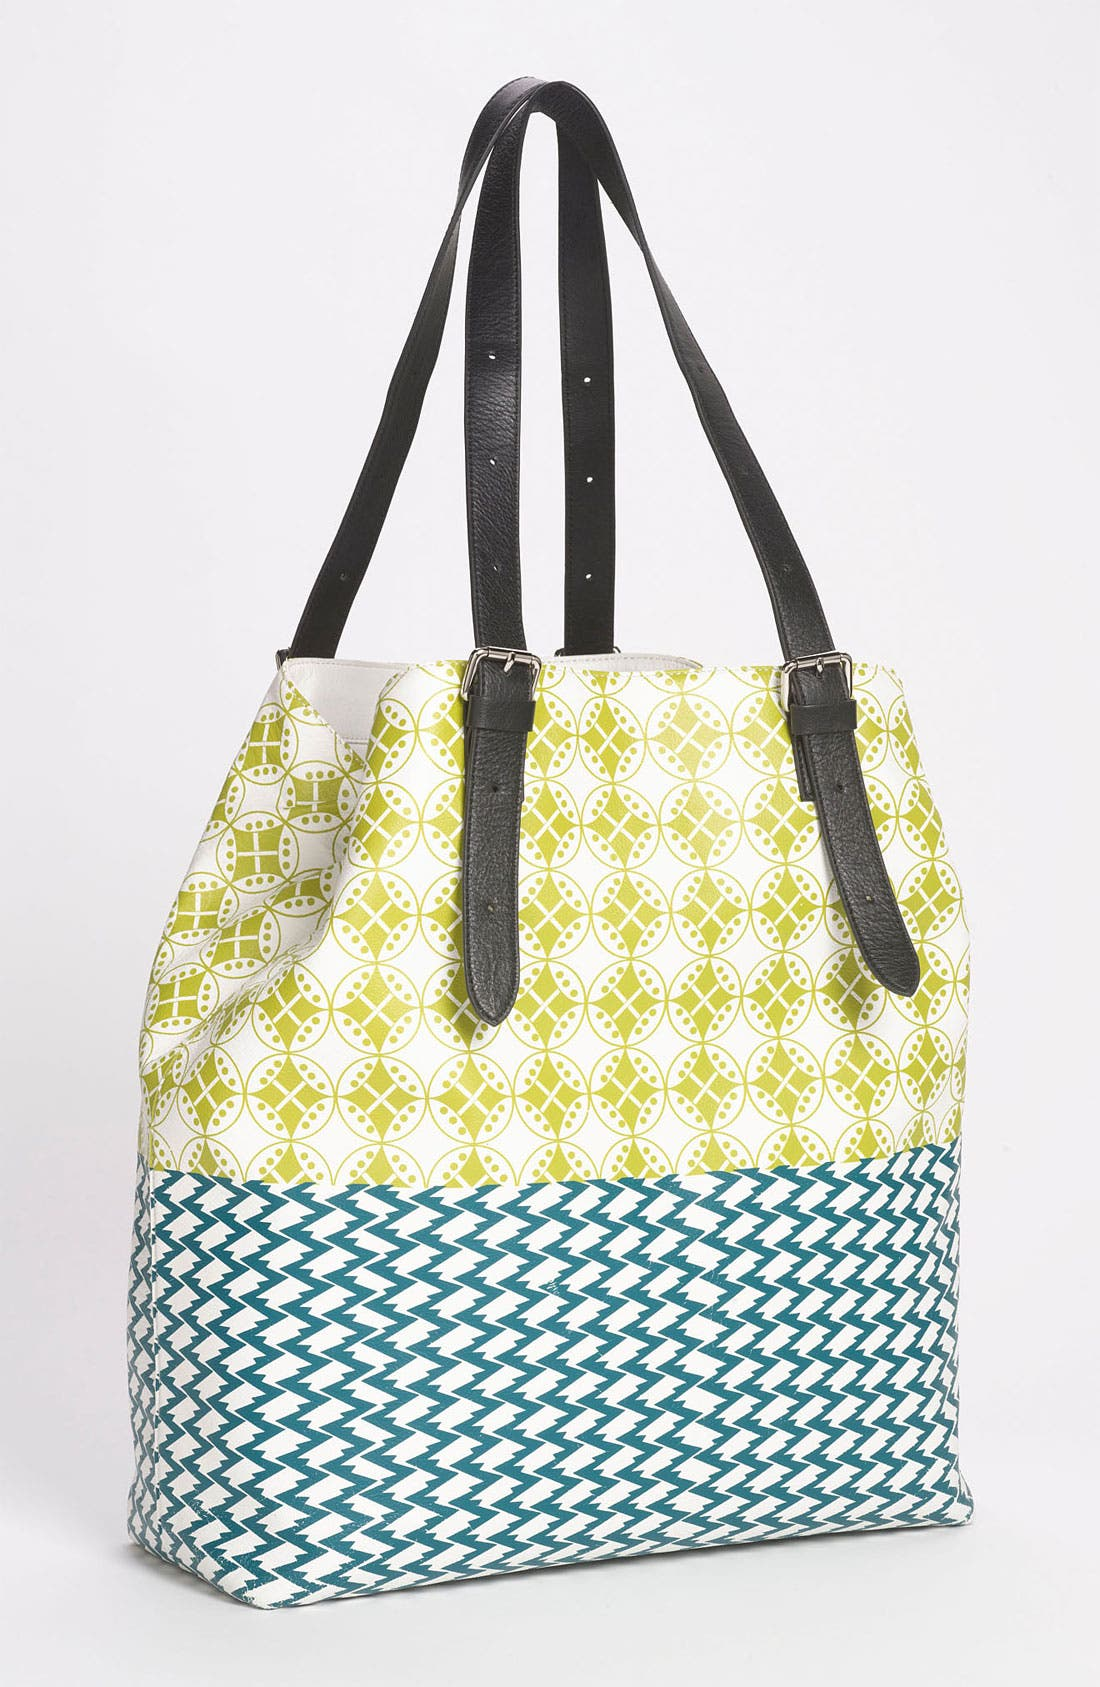 Main Image - Yarnz 'Bows & Arrows' Leather Tote